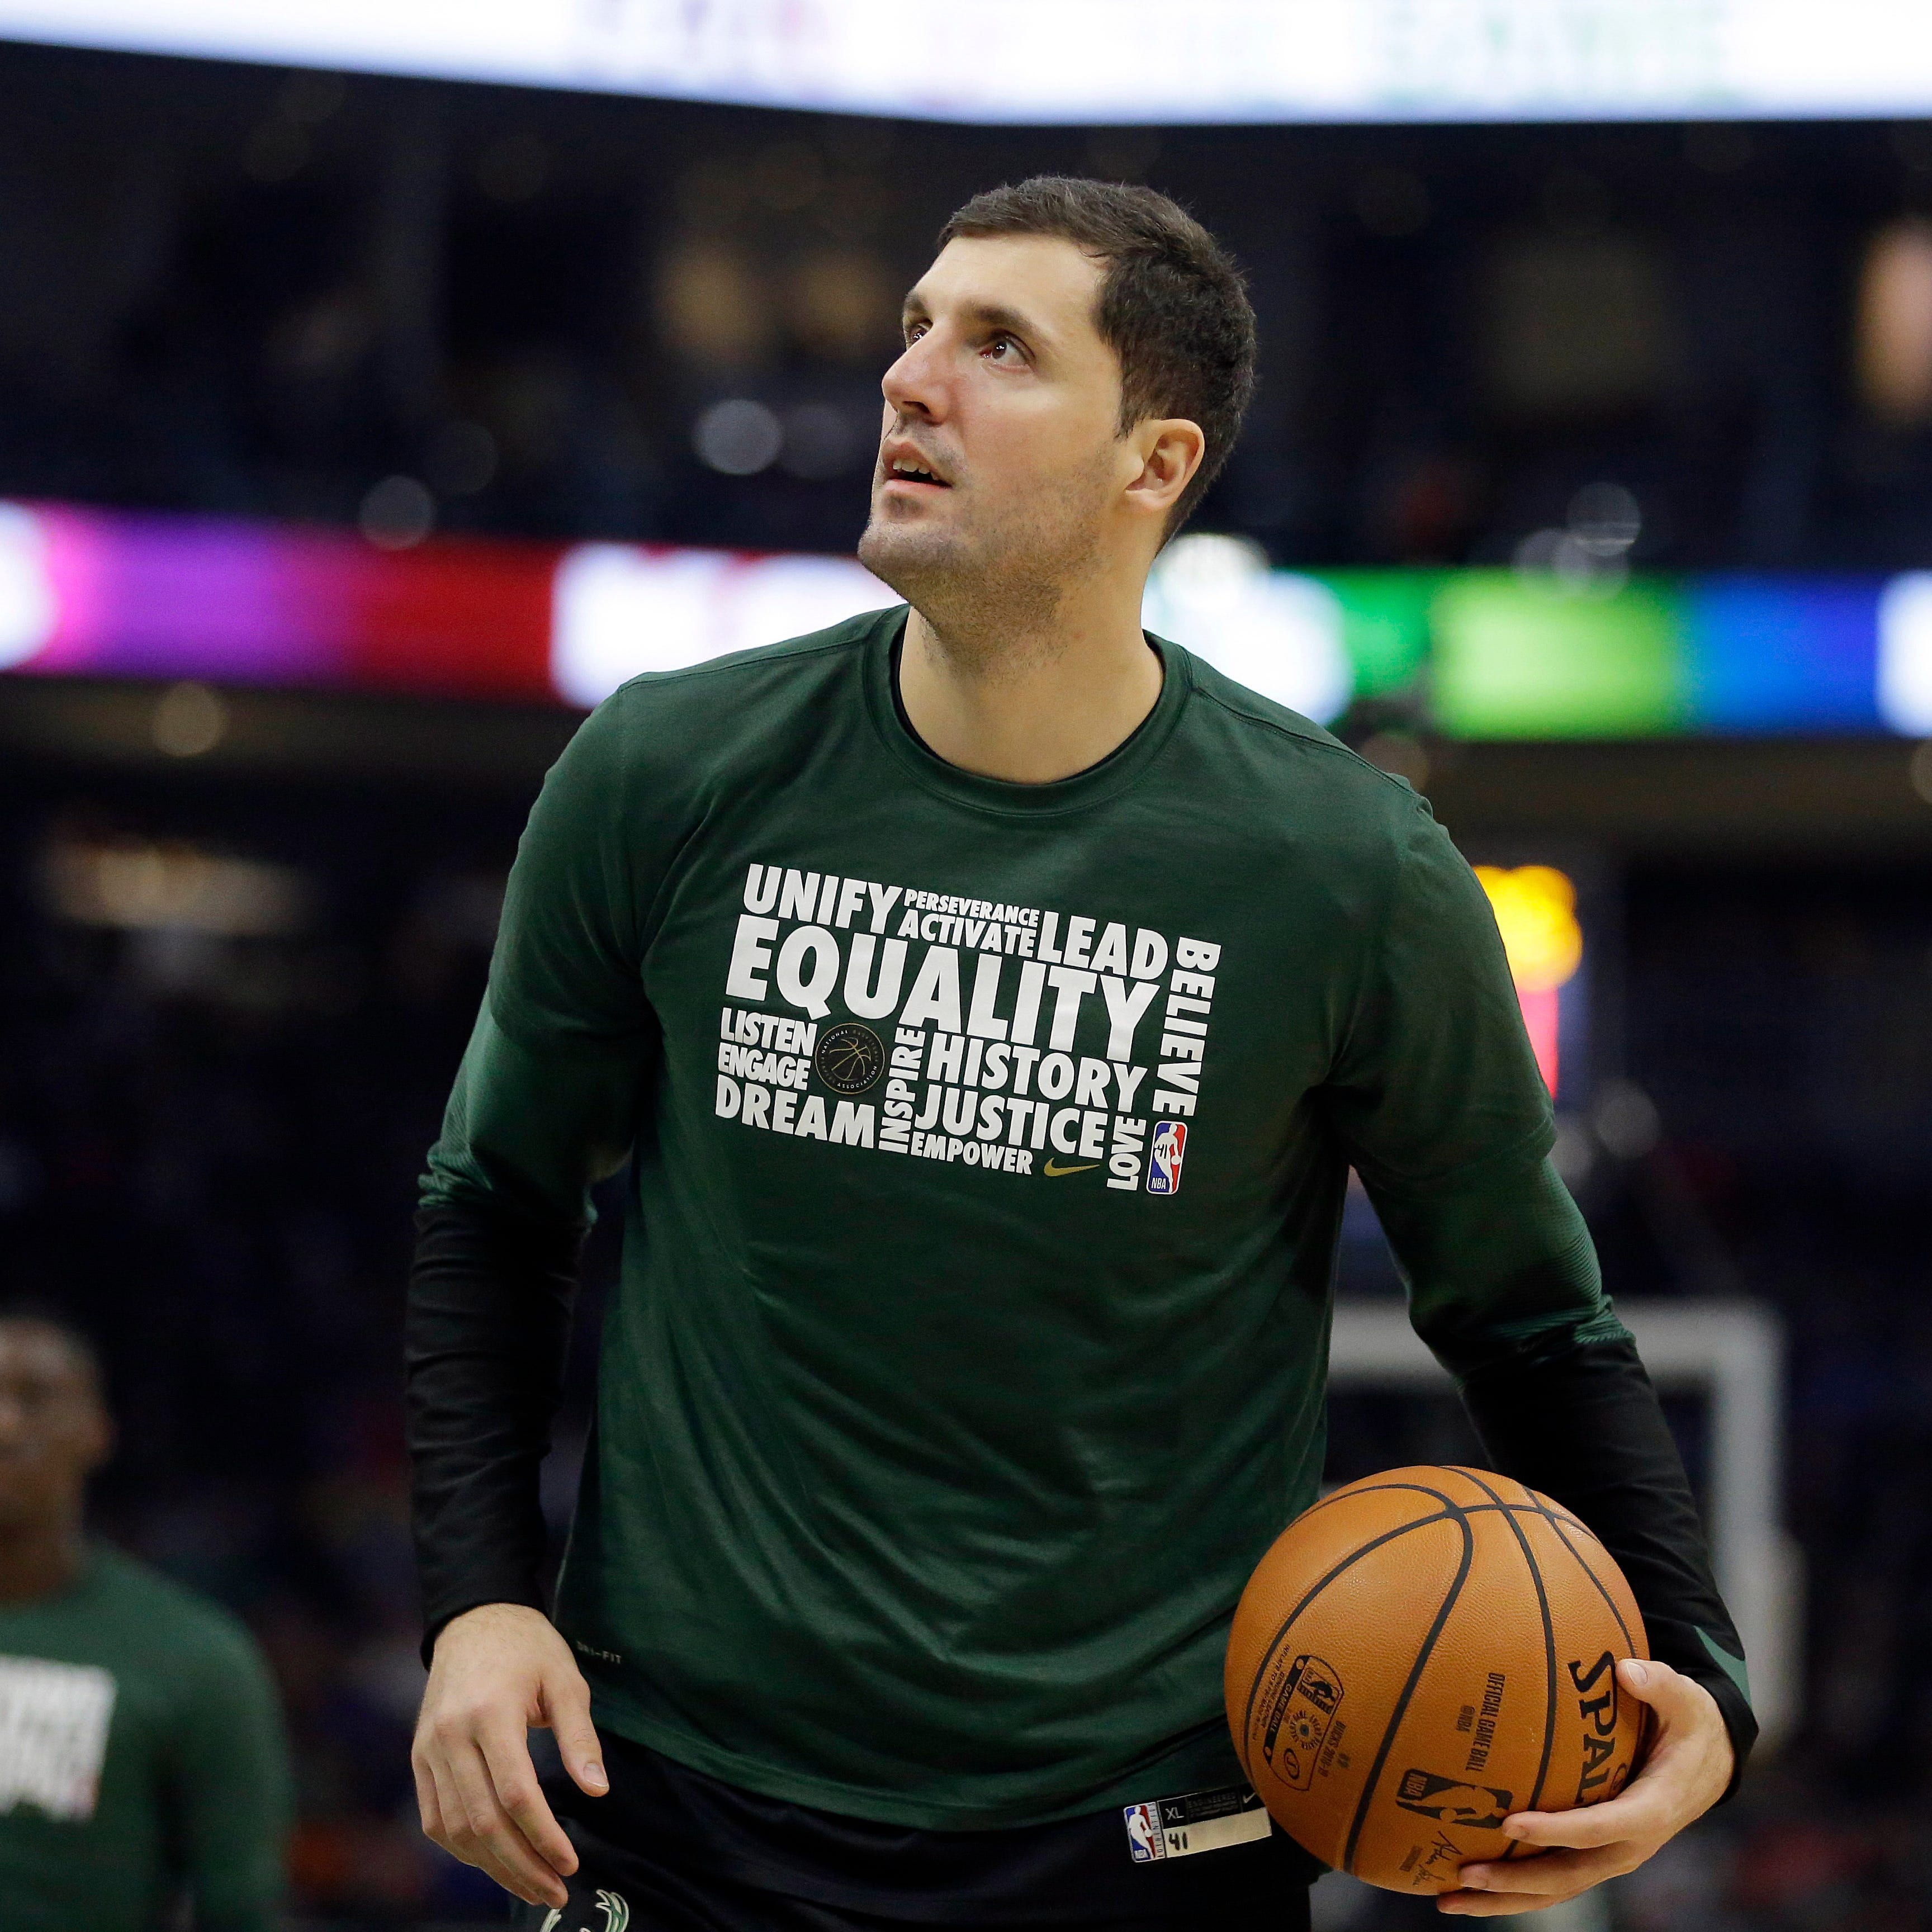 New Bucks forward Nikola Mirotic settles in, keeps busy during NBA all-star break